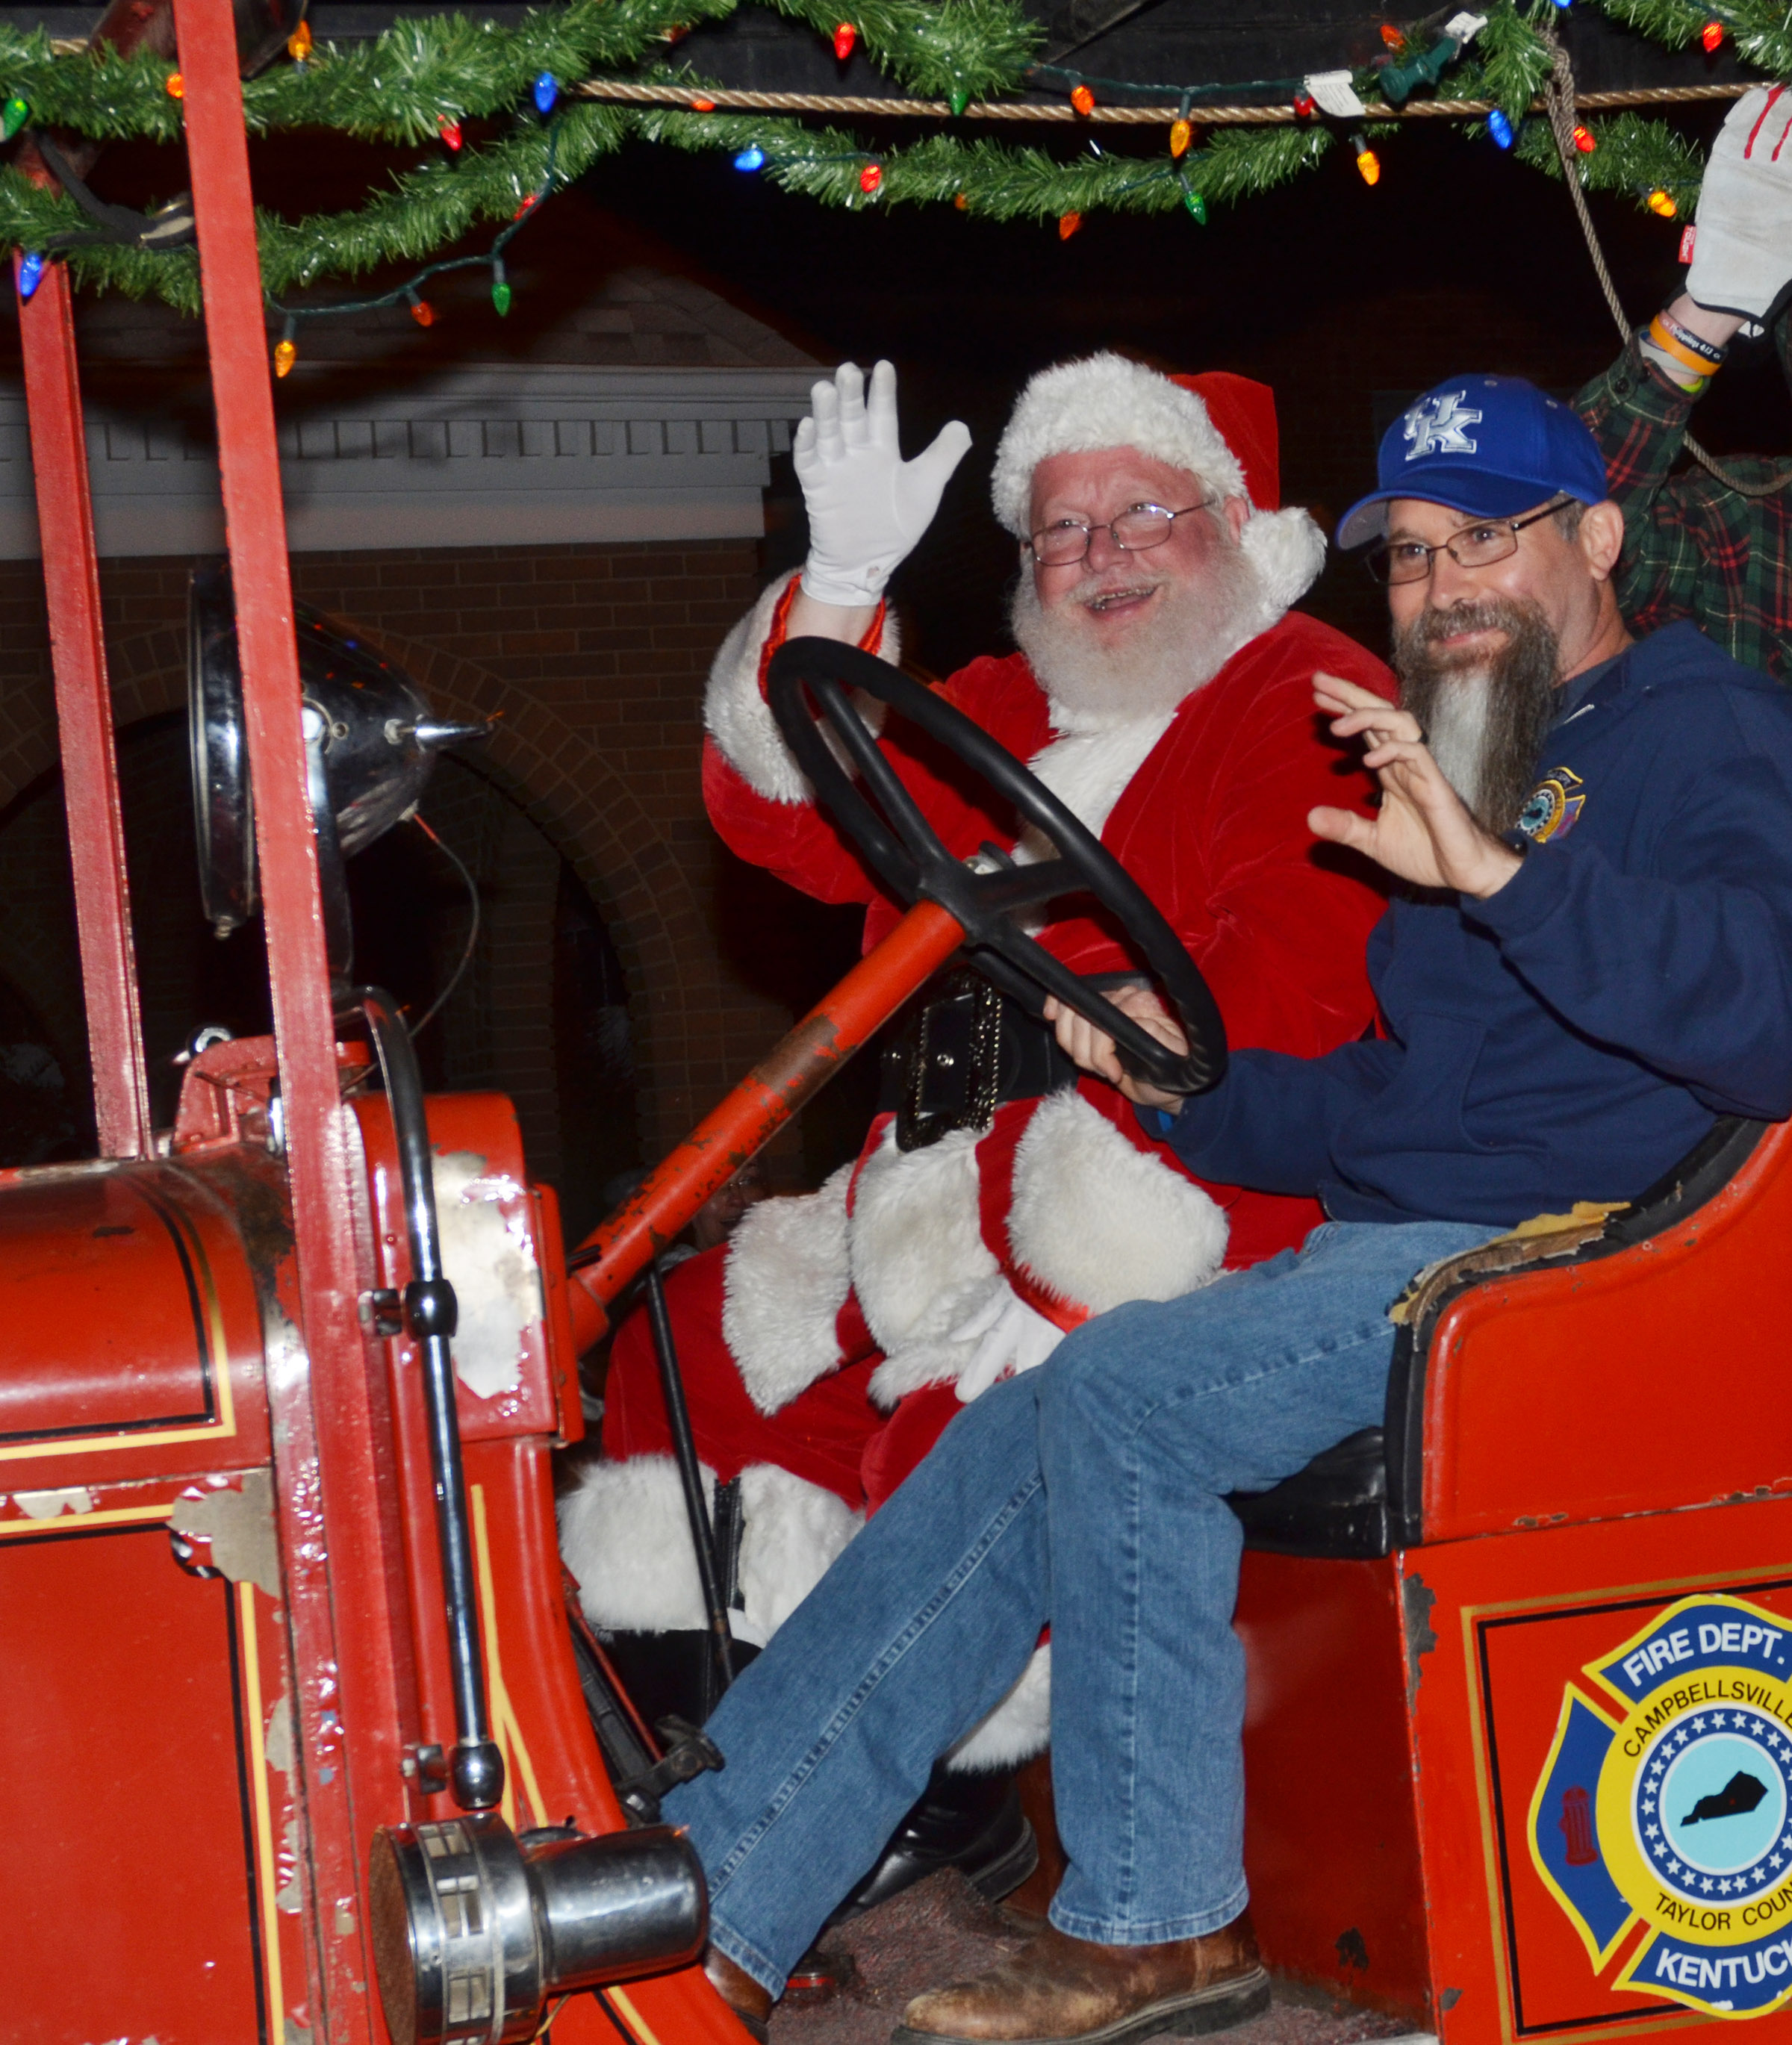 Campbellsville elementary, middle and high school custodial worker Randy Bricken drives Santa in the City of Campbellsville's annual Christmas parade.